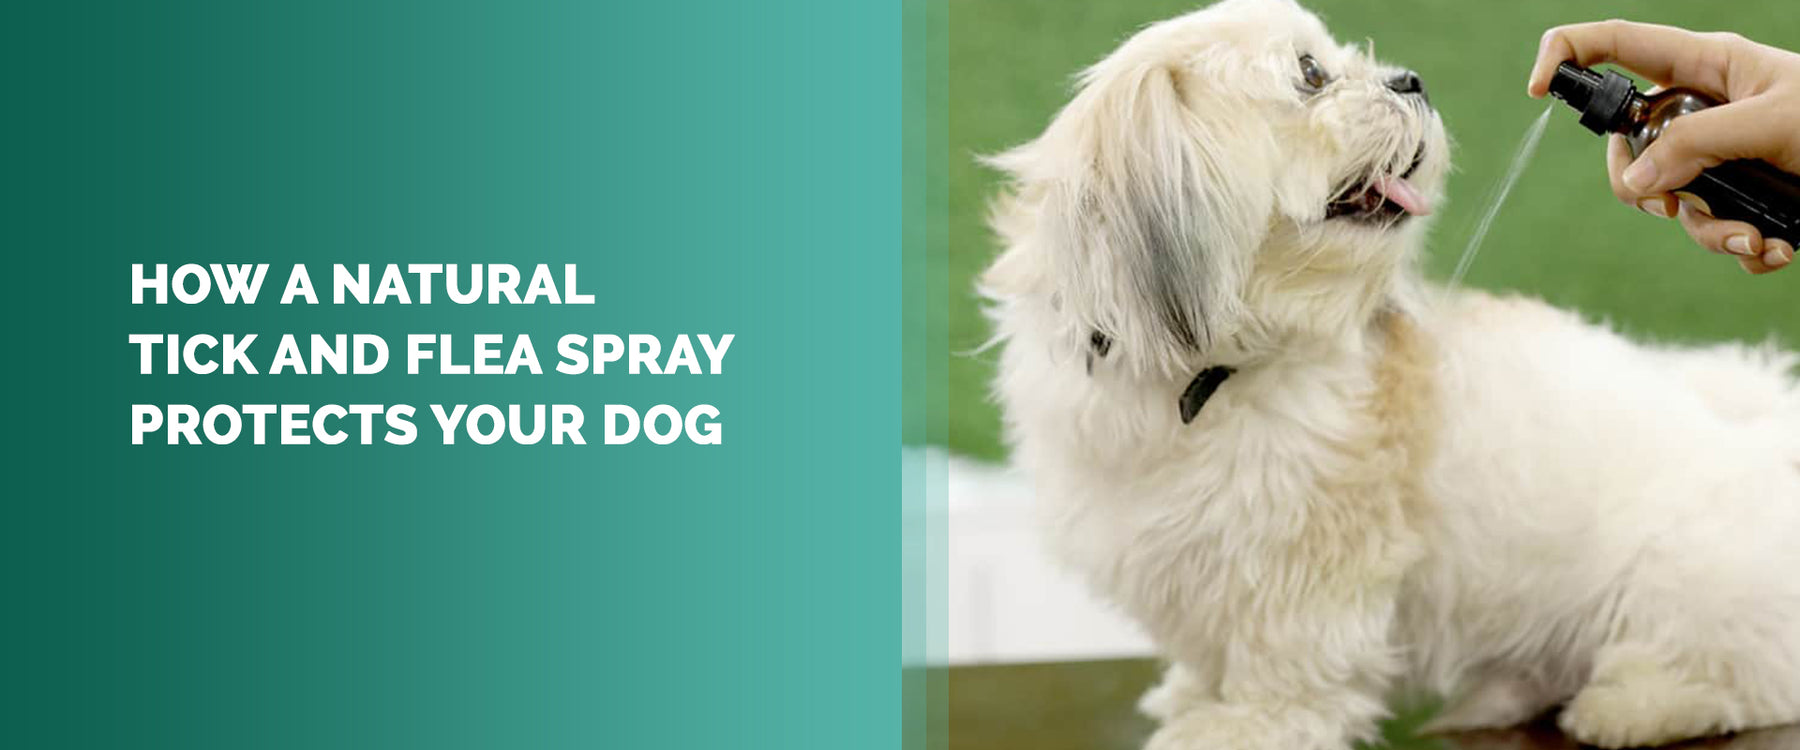 How A Natural Tick And Flea Spray Protects Your Dog